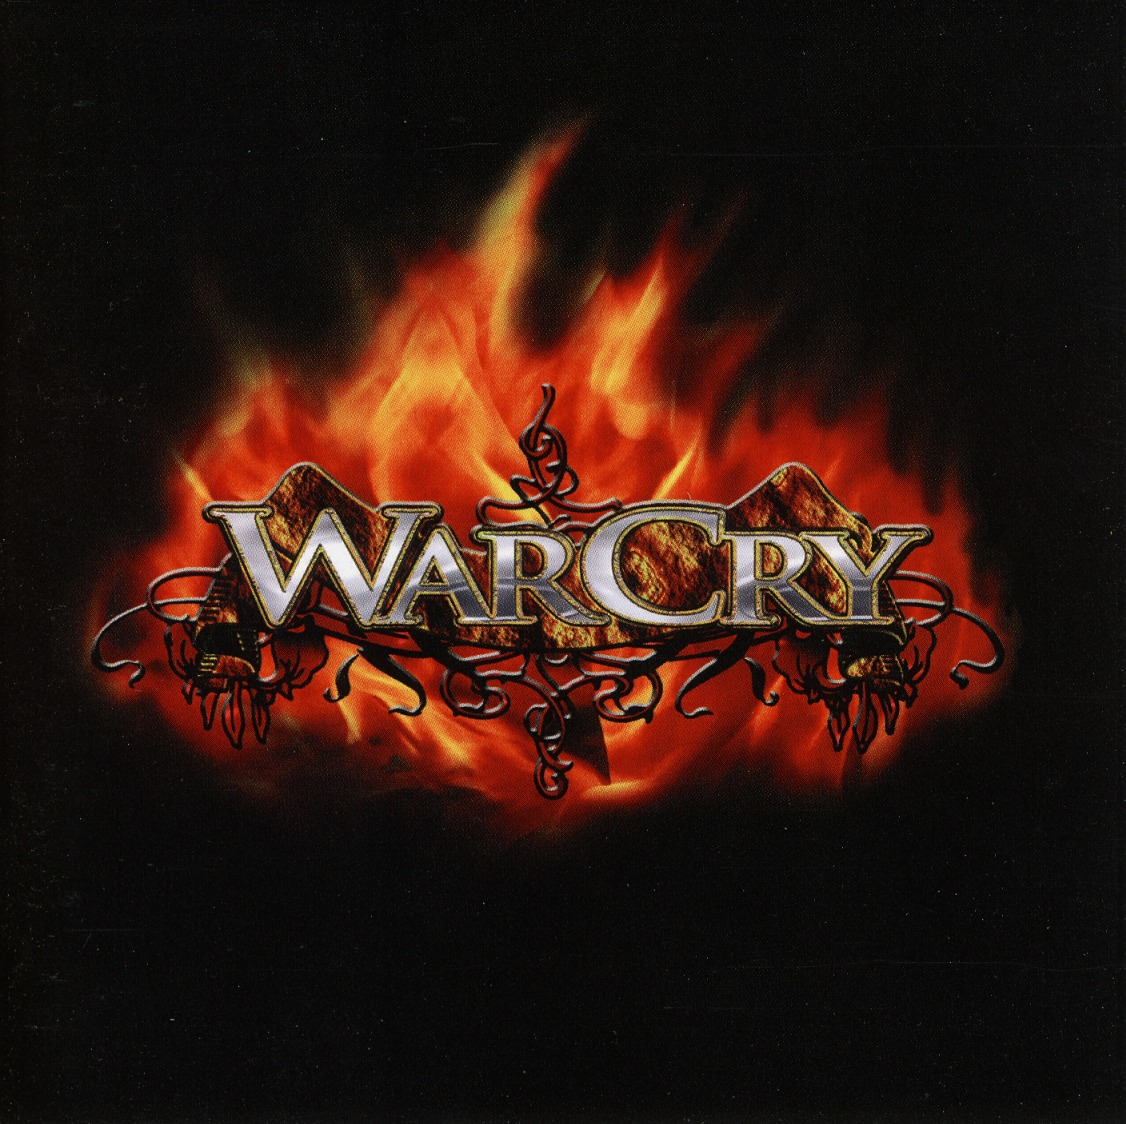 WARCRY (Spain) / Warcry